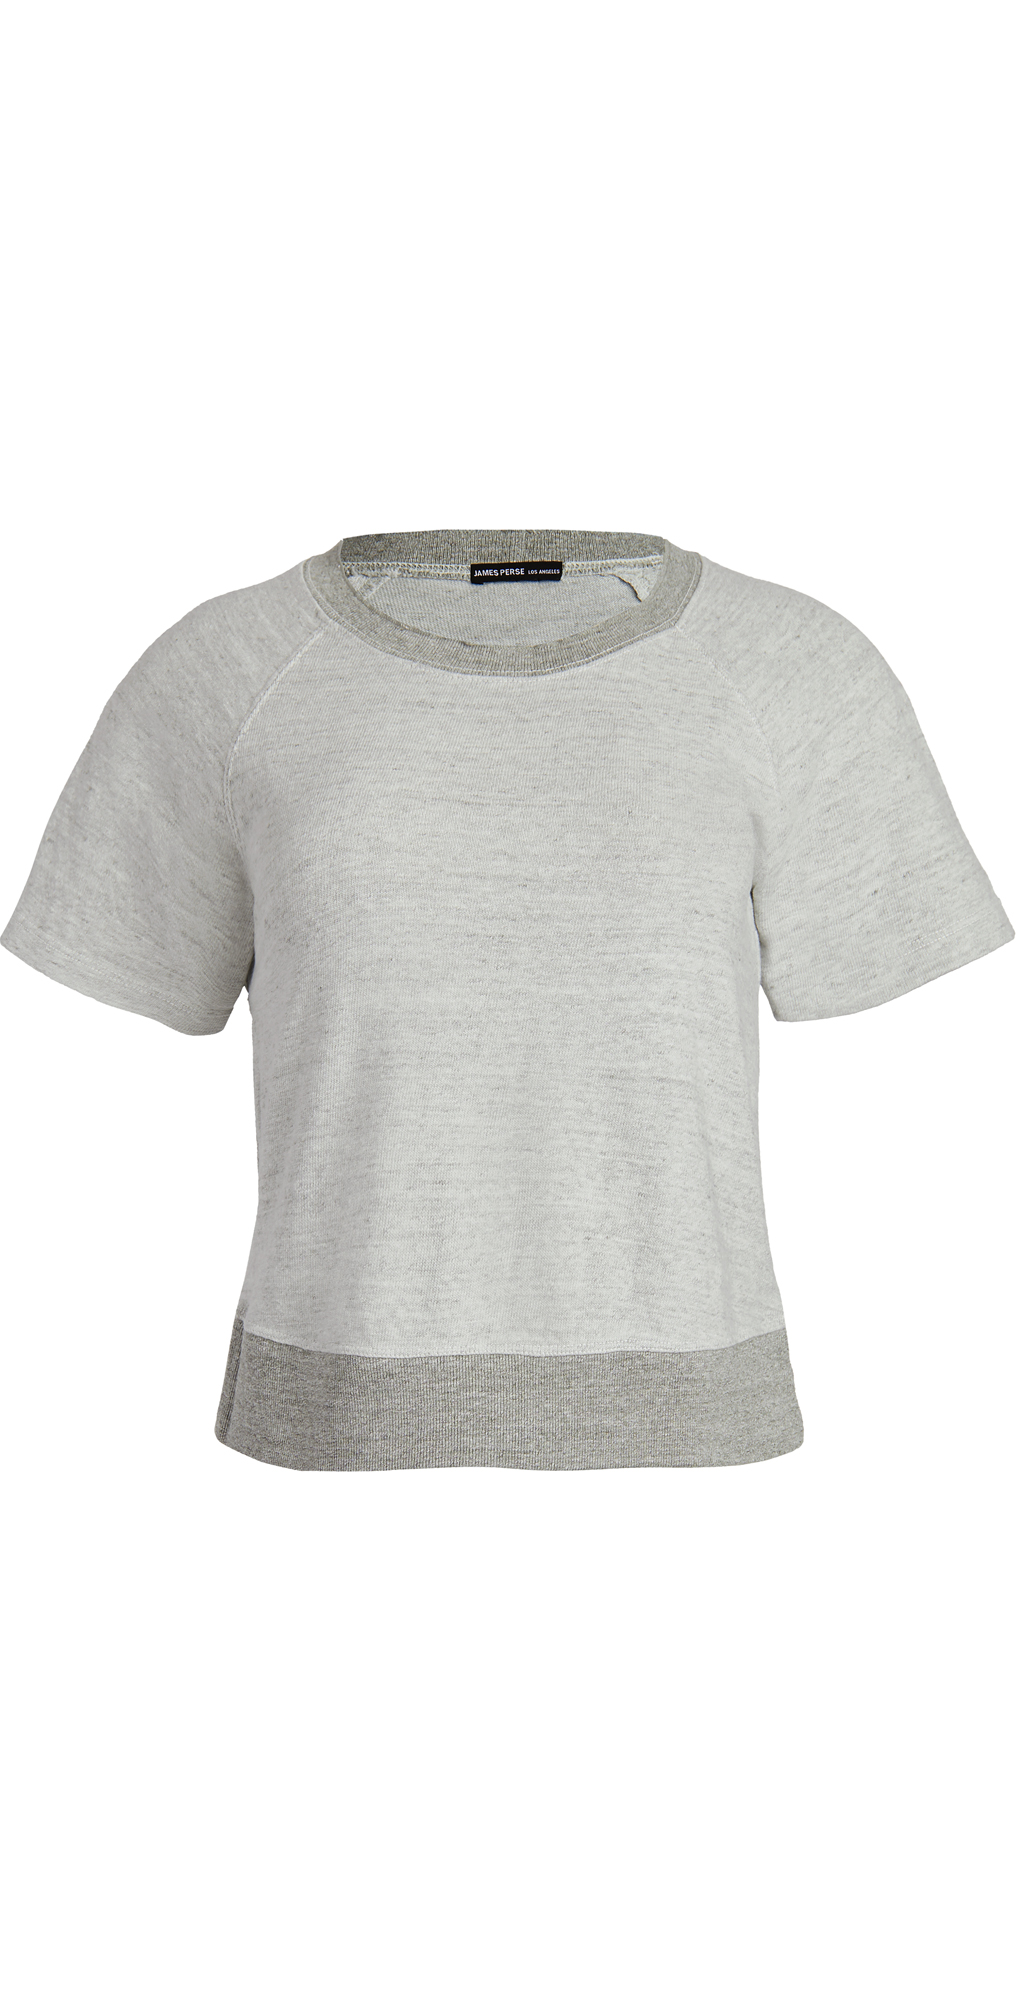 James Perse Patched Top